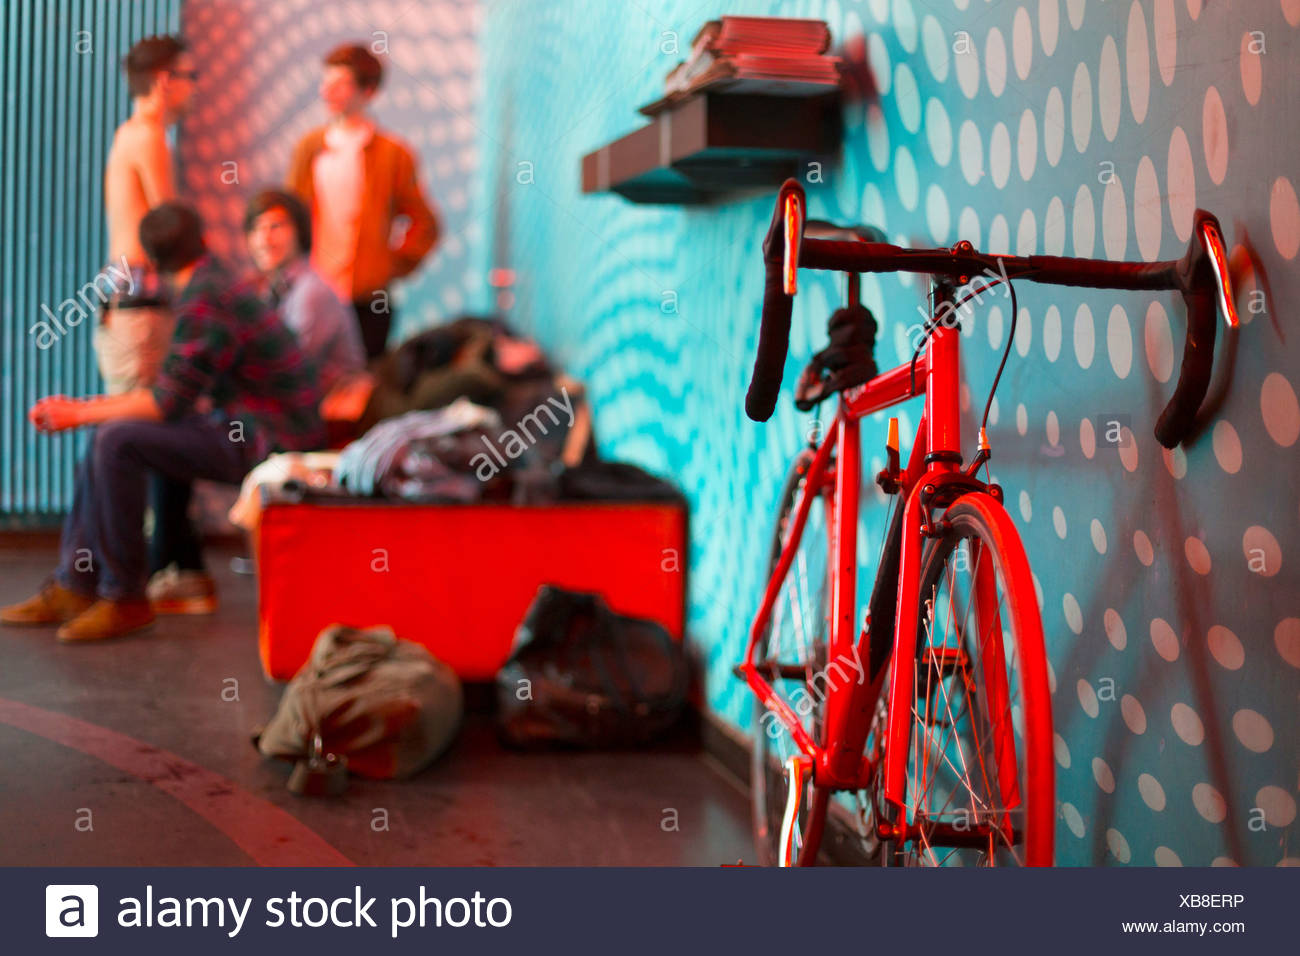 Bicycle in foreground, group of four teenage boys in background - Stock Image